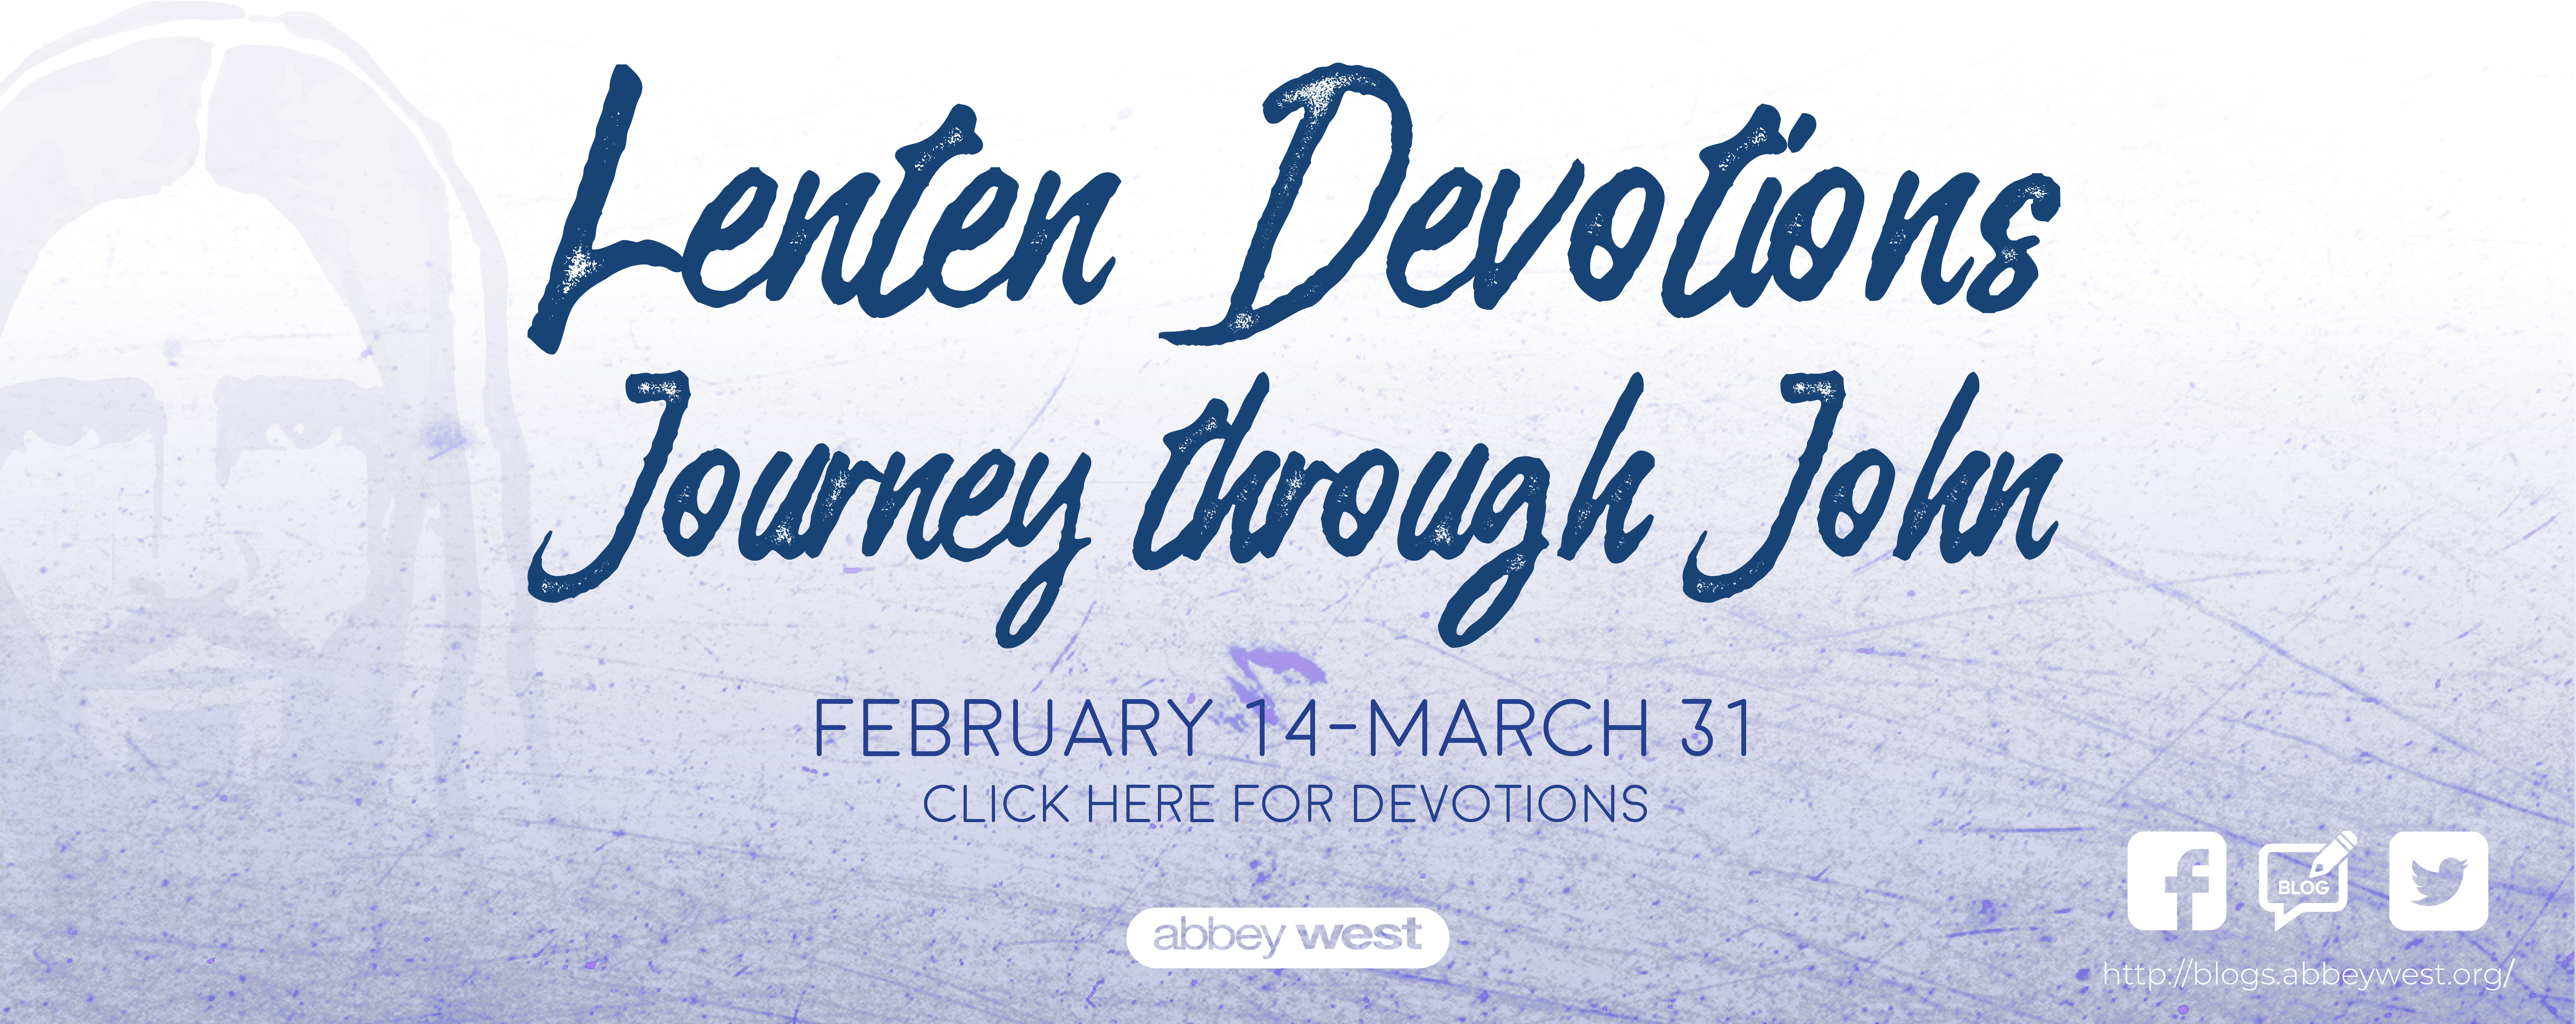 Lenten Devotions 2/14-3/31